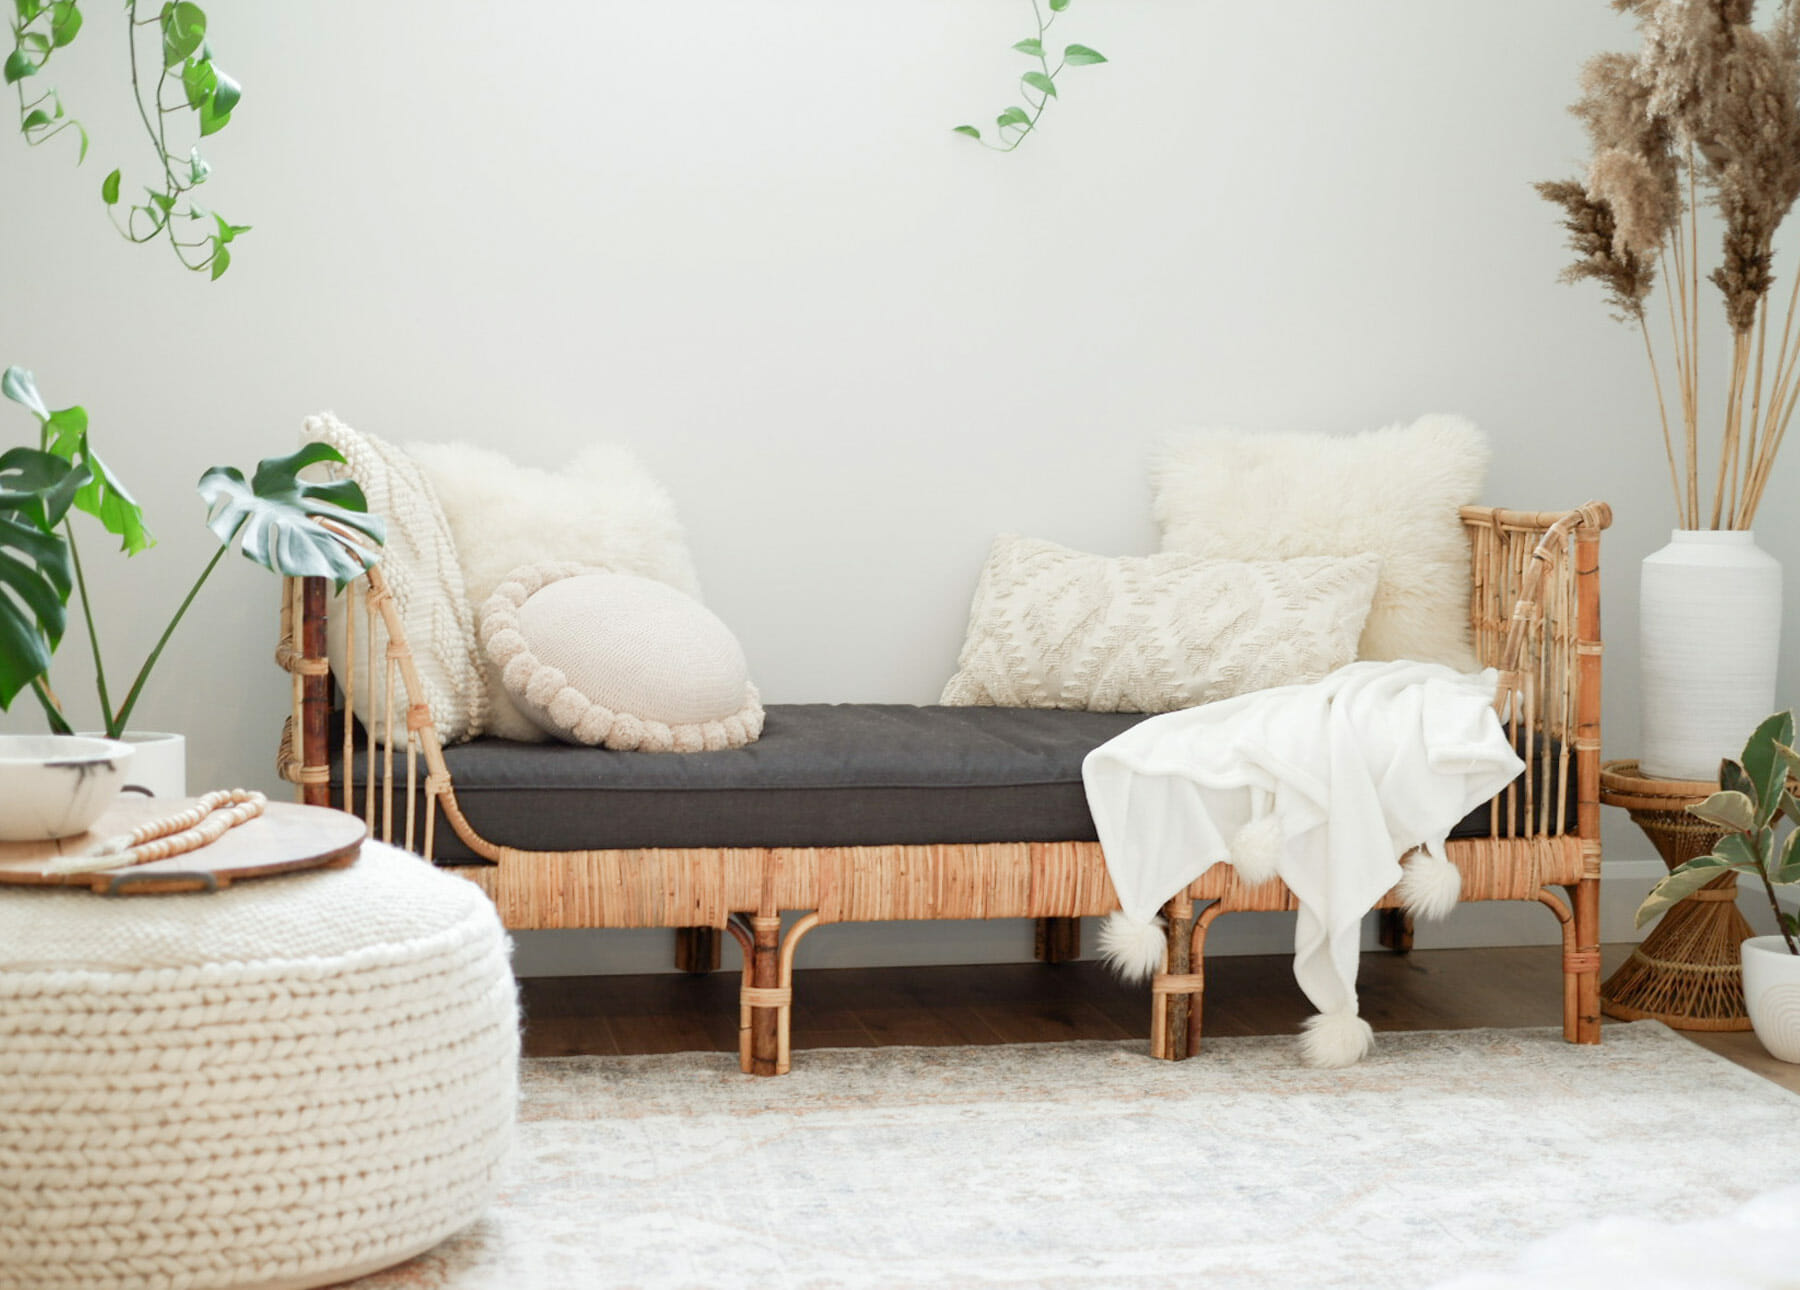 Article's rattan Sol Daybed is adorned with cream colored pillows and a throw.